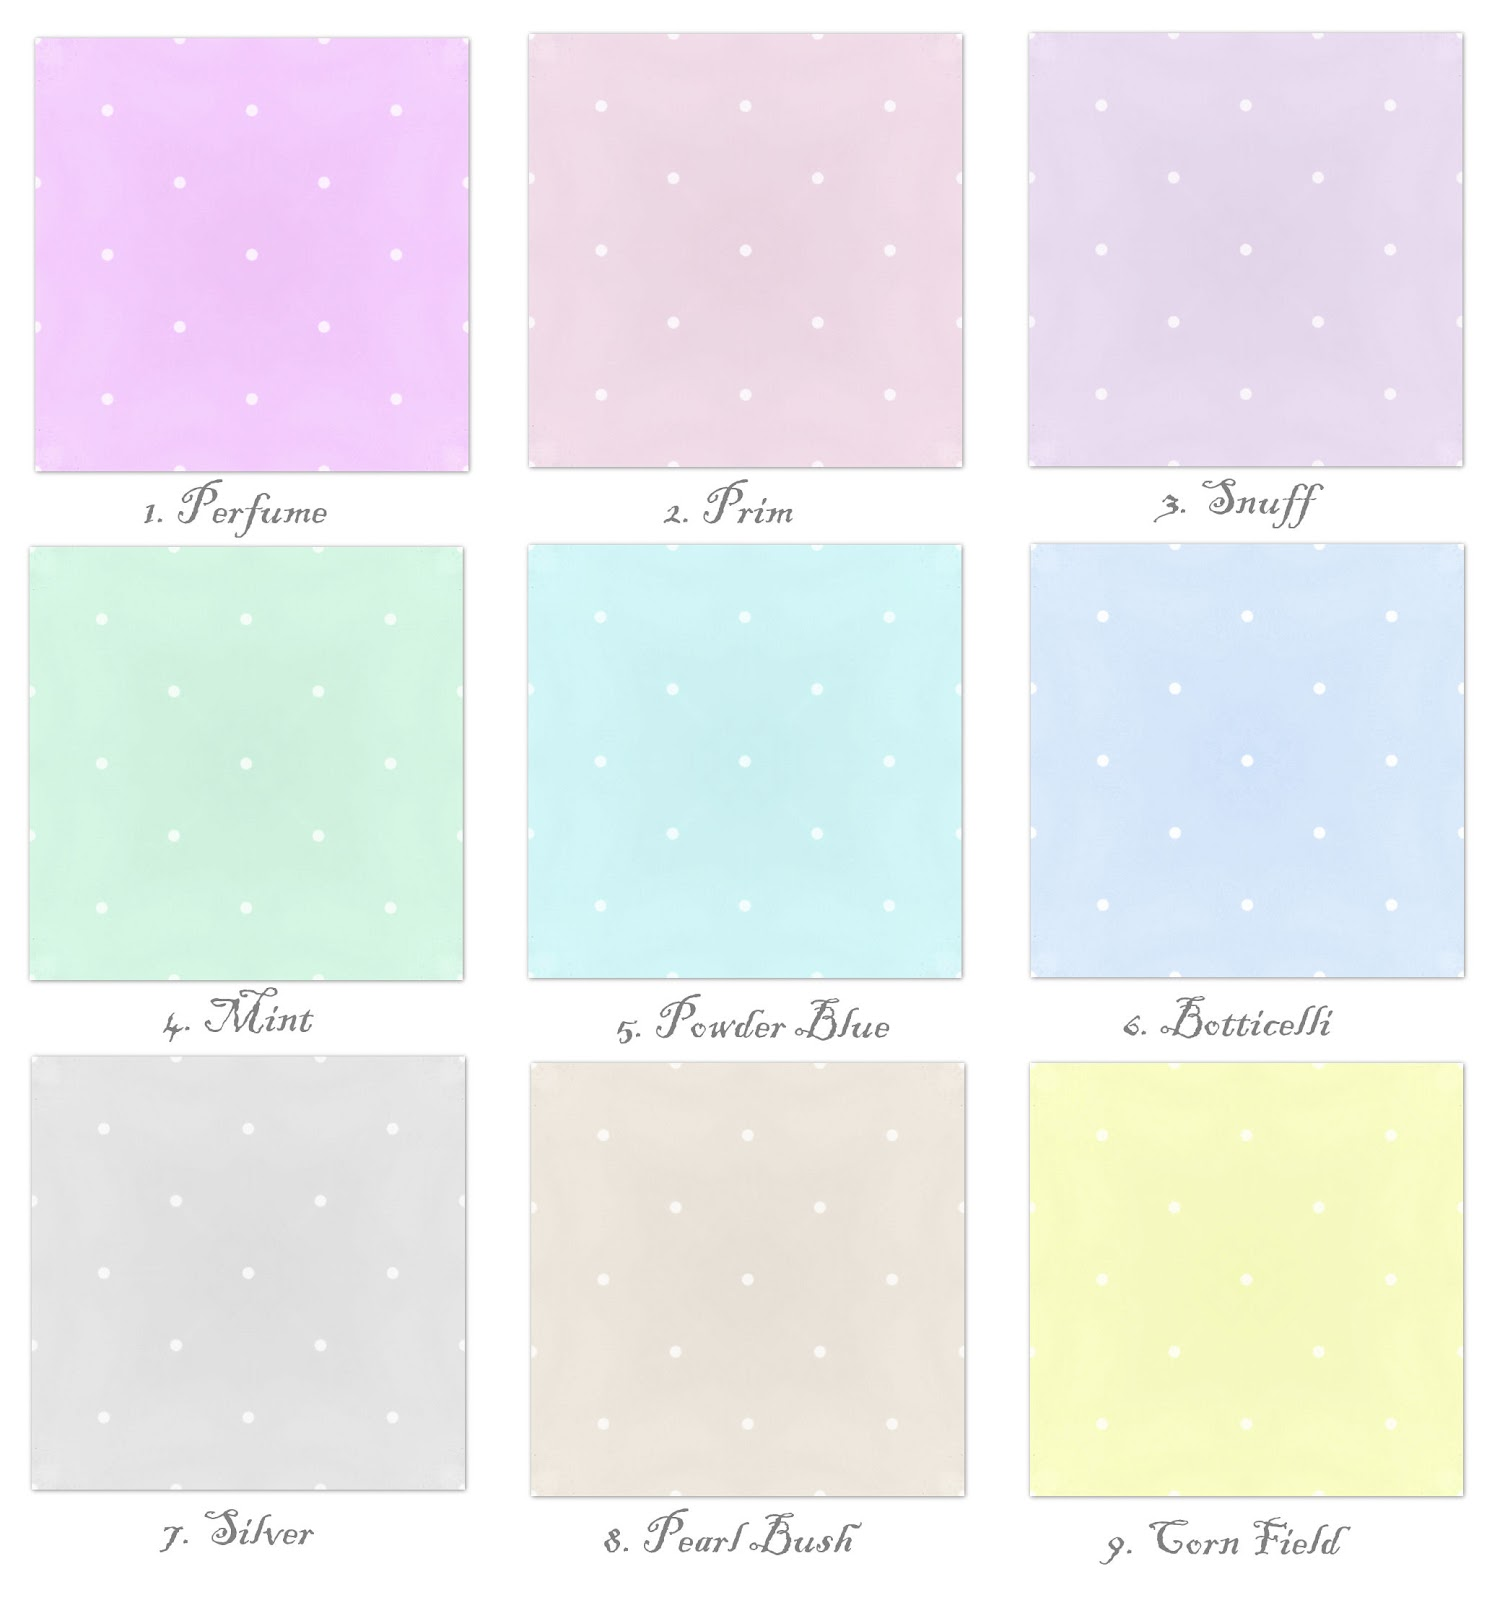 Mint Colour Code >> *Cute ᾔ CooL* : Polka Dot Pastel Collection + edit.